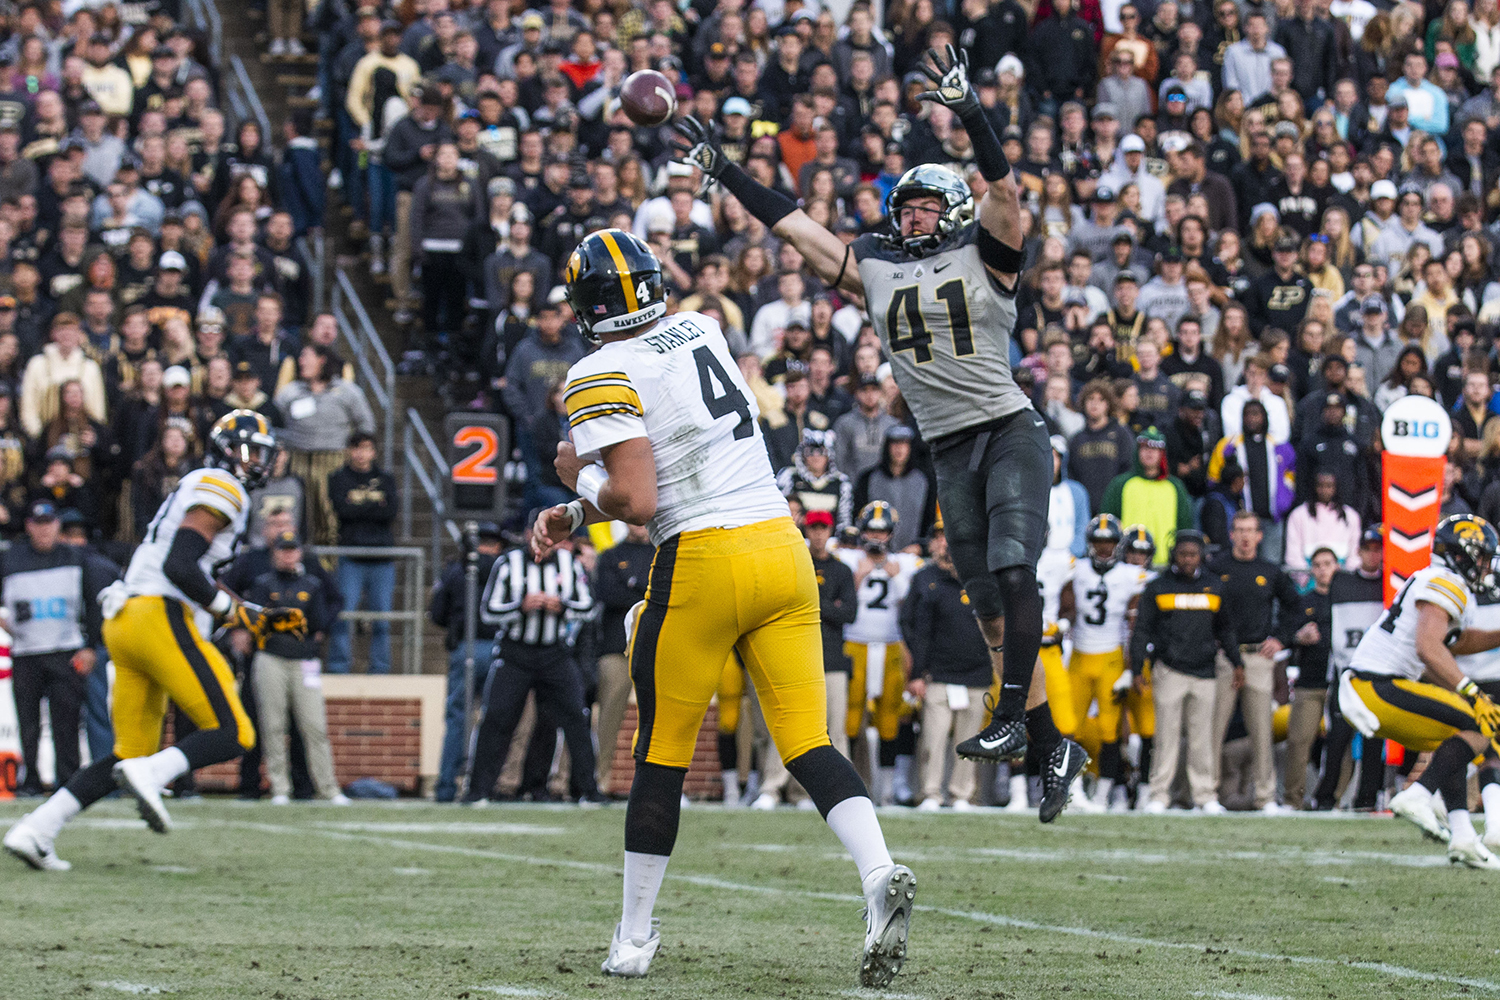 Iowa+quarterback+Nate+Stanley+throws+a+pass+during+the+Iowa%2FPurdue+game+at+Ross-Ade+Stadium+in+West+Lafayette%2C+Ind.+on+Saturday%2C+November+3%2C+2018.+The+Boilermakers+defeated+the+Hawkeyes+38-36.+